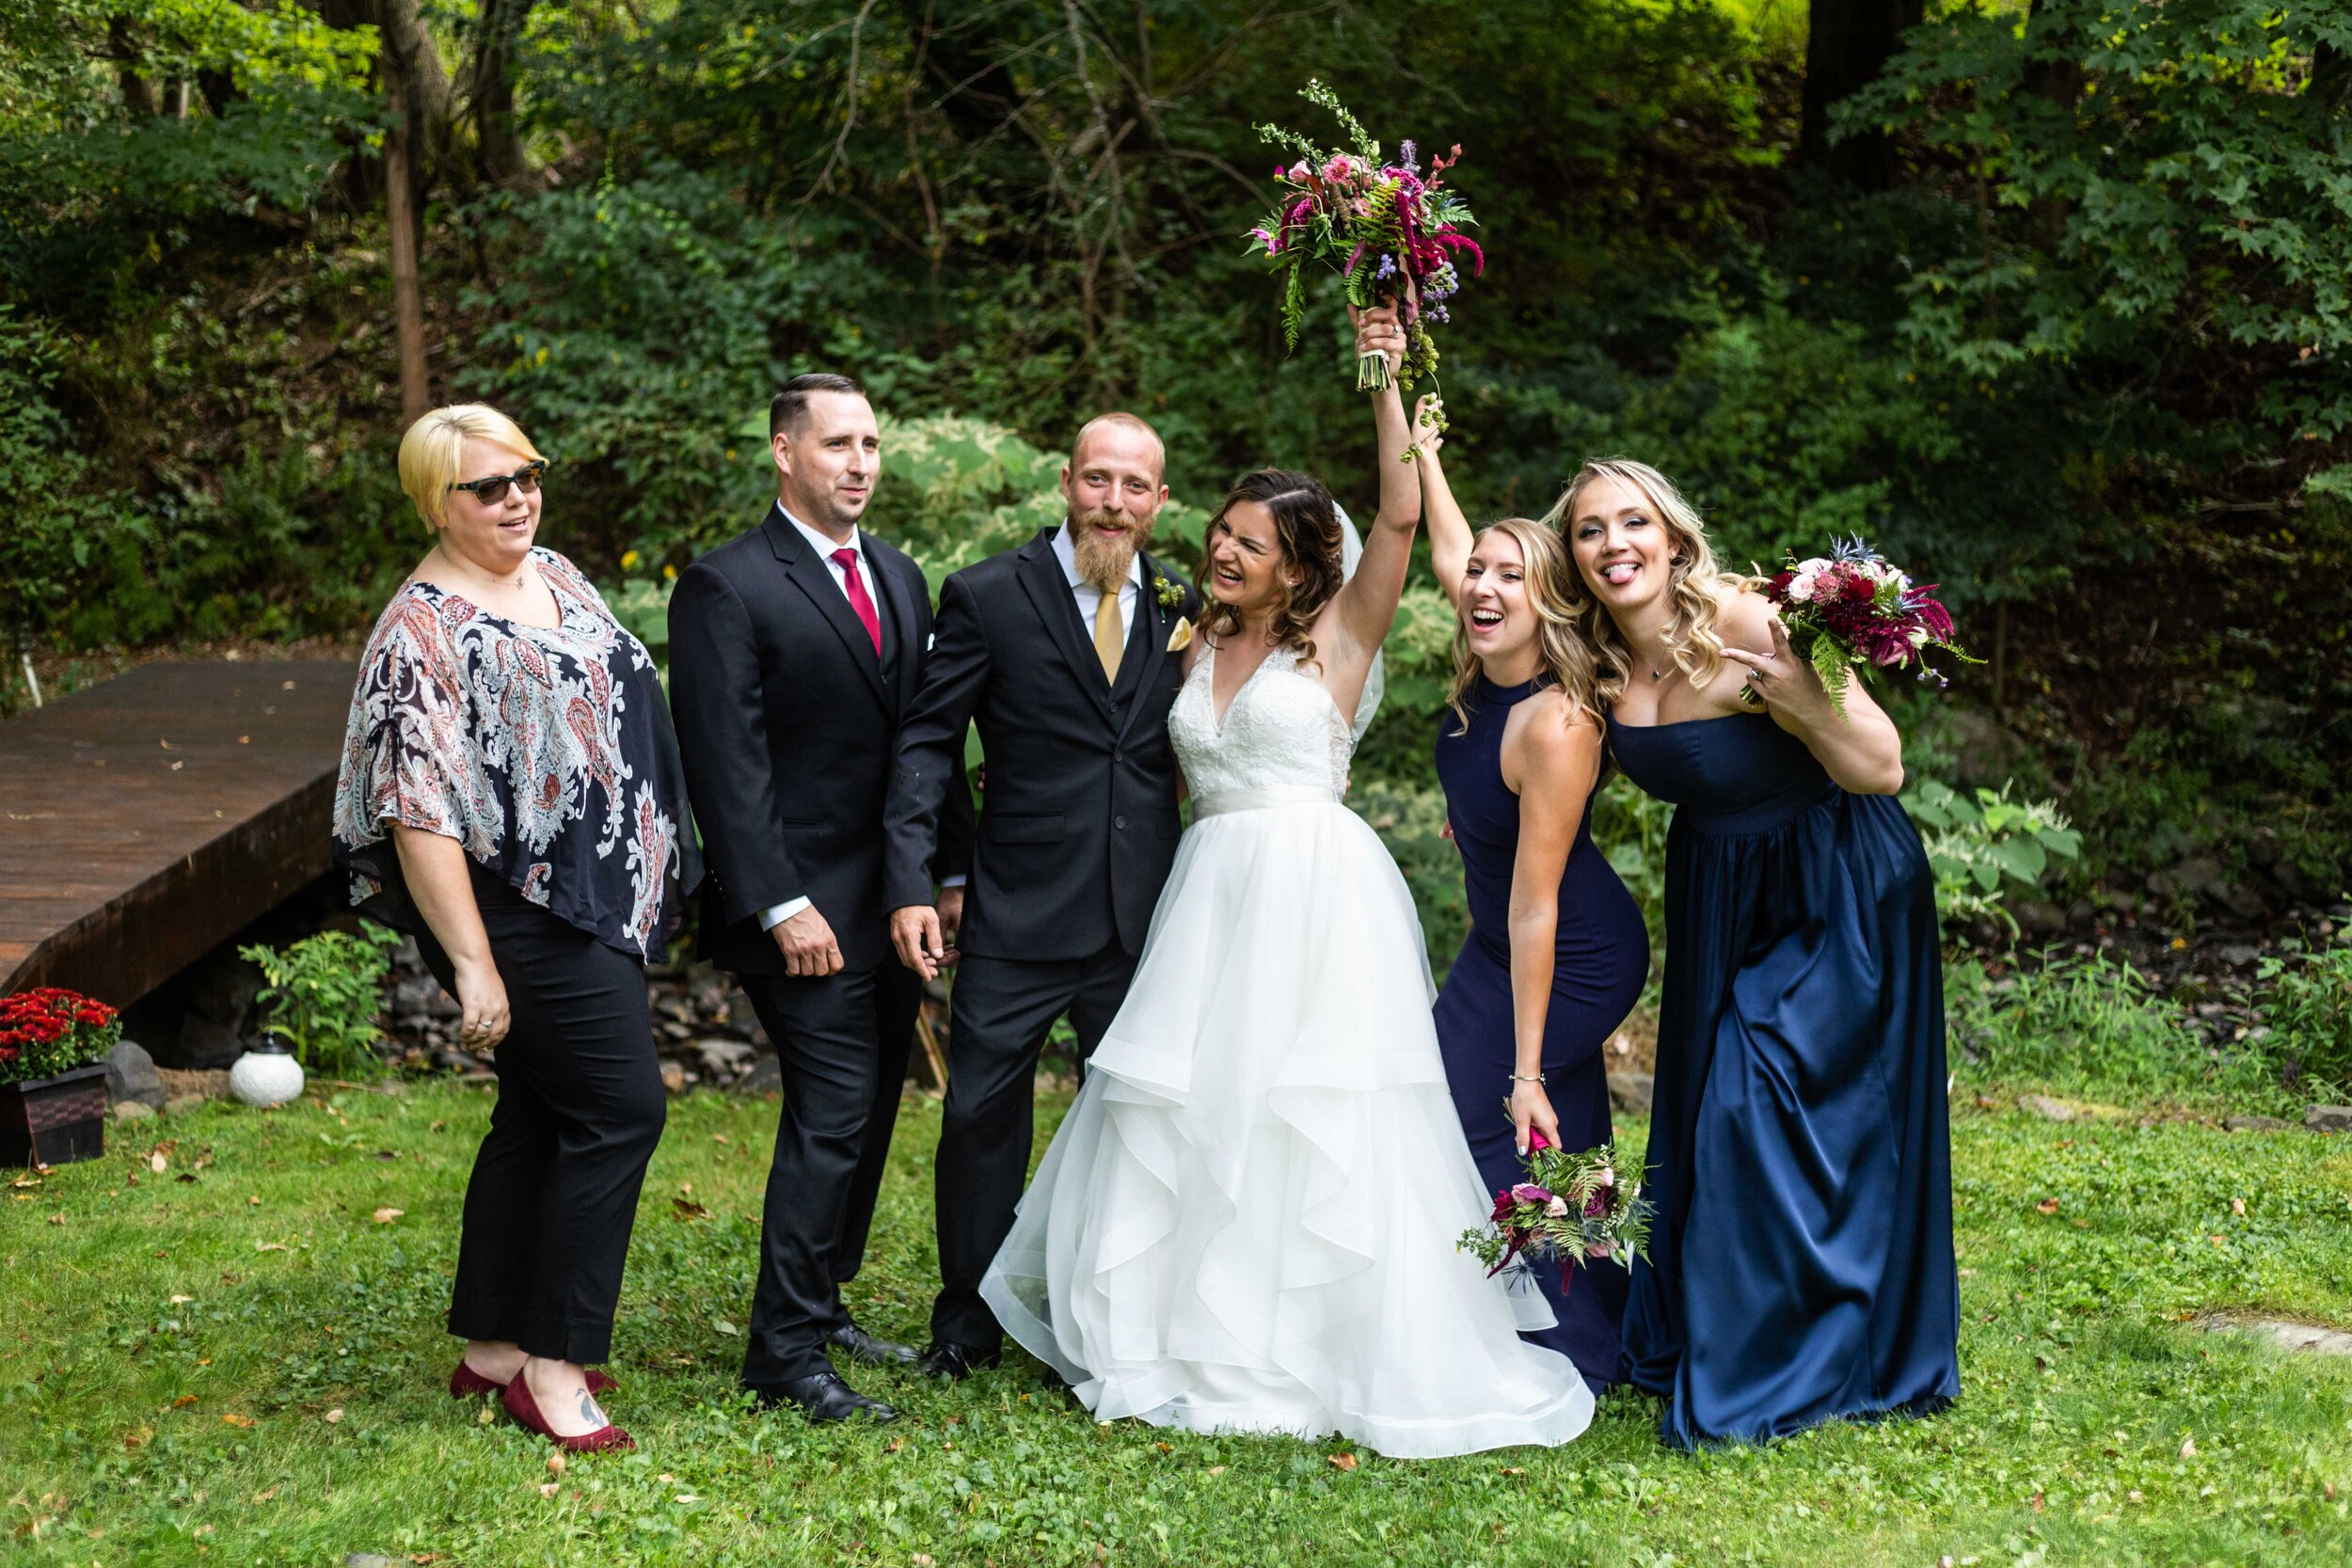 Backyard Homebrew Wedding in Branchville NJ by Dan Schenker Photography-37.jpg